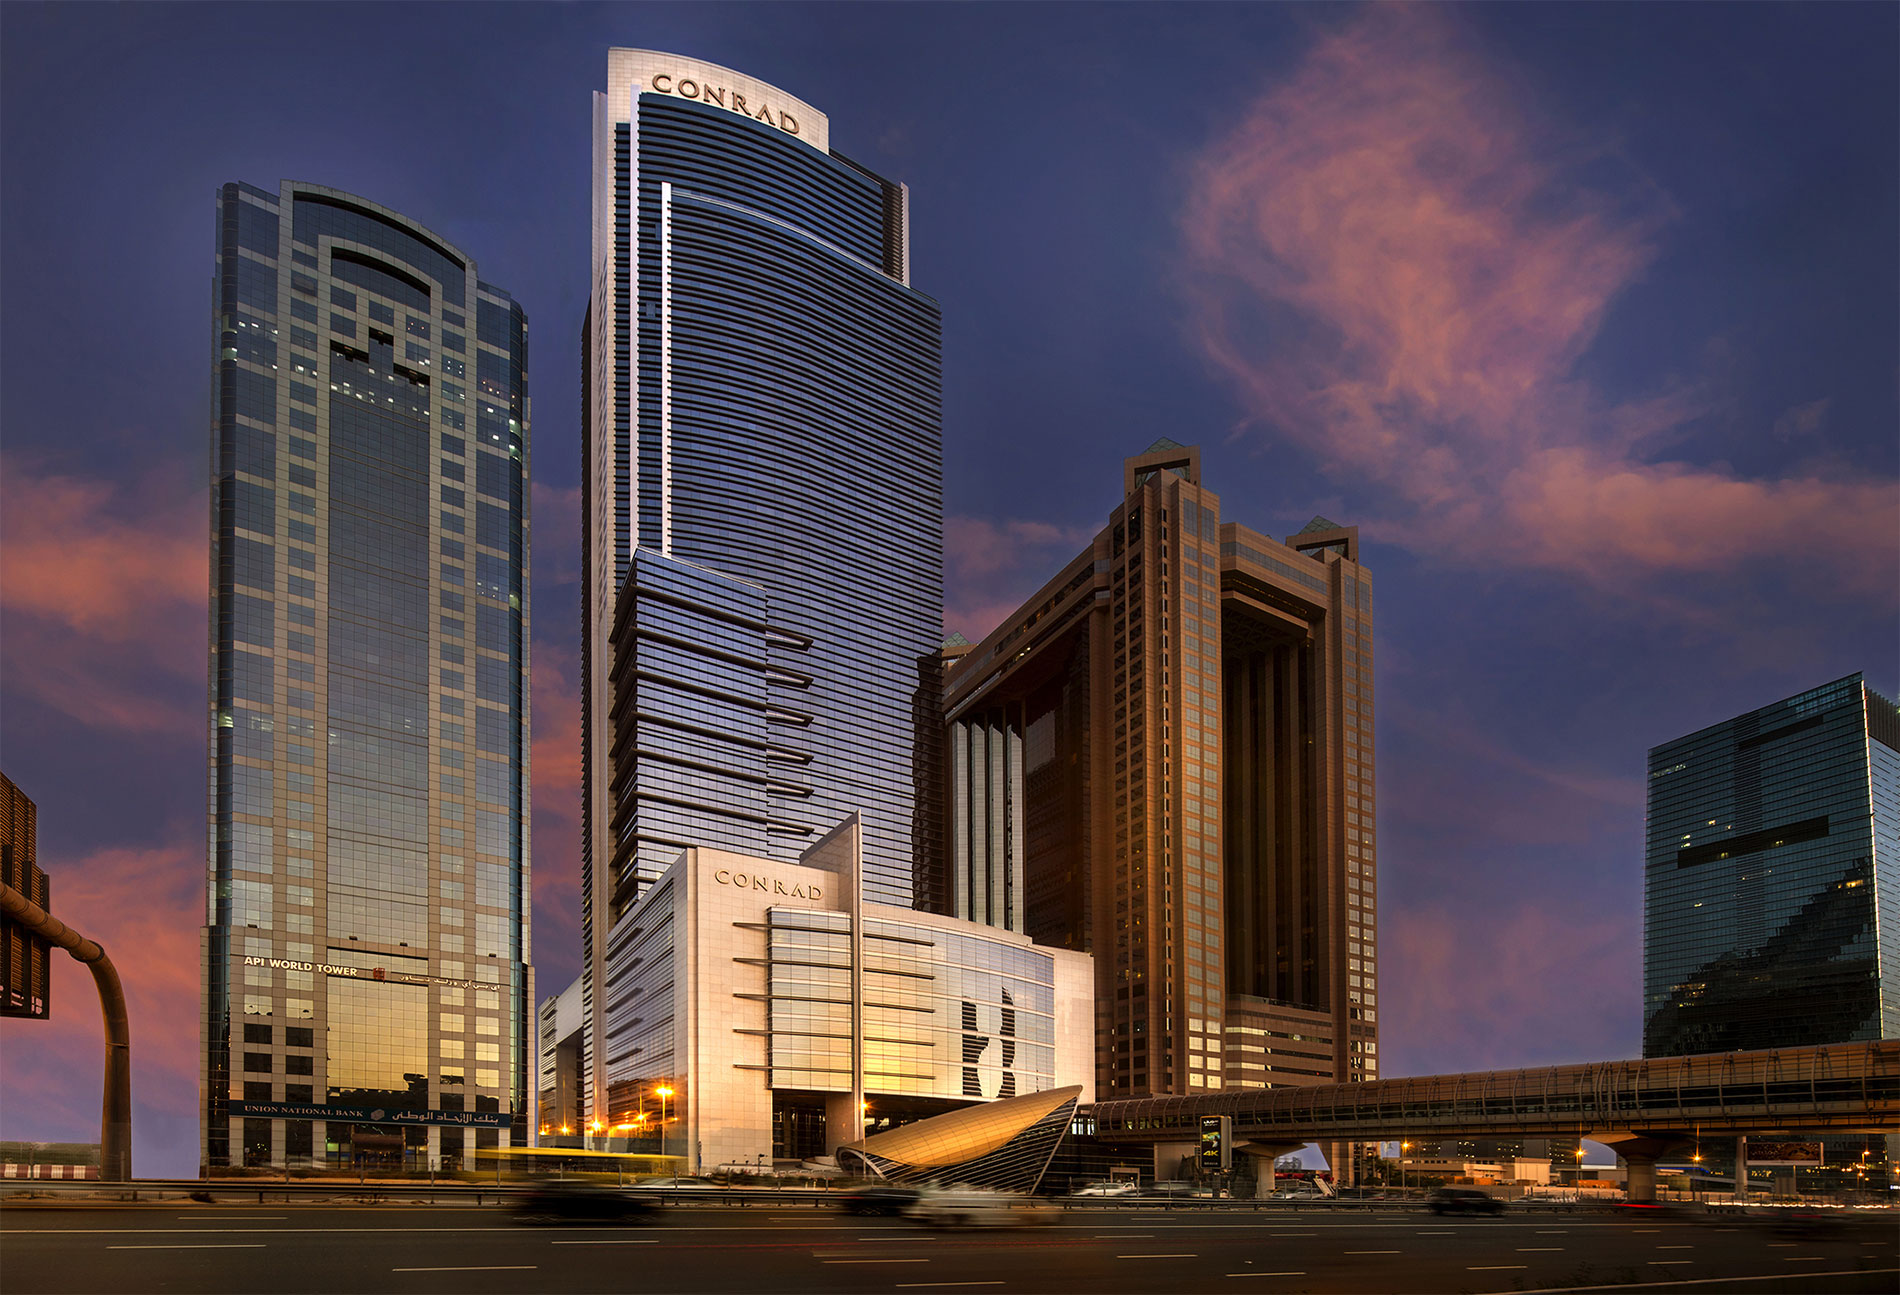 Conrad hotels resorts debuts in united arab emirates for Hotels in uae